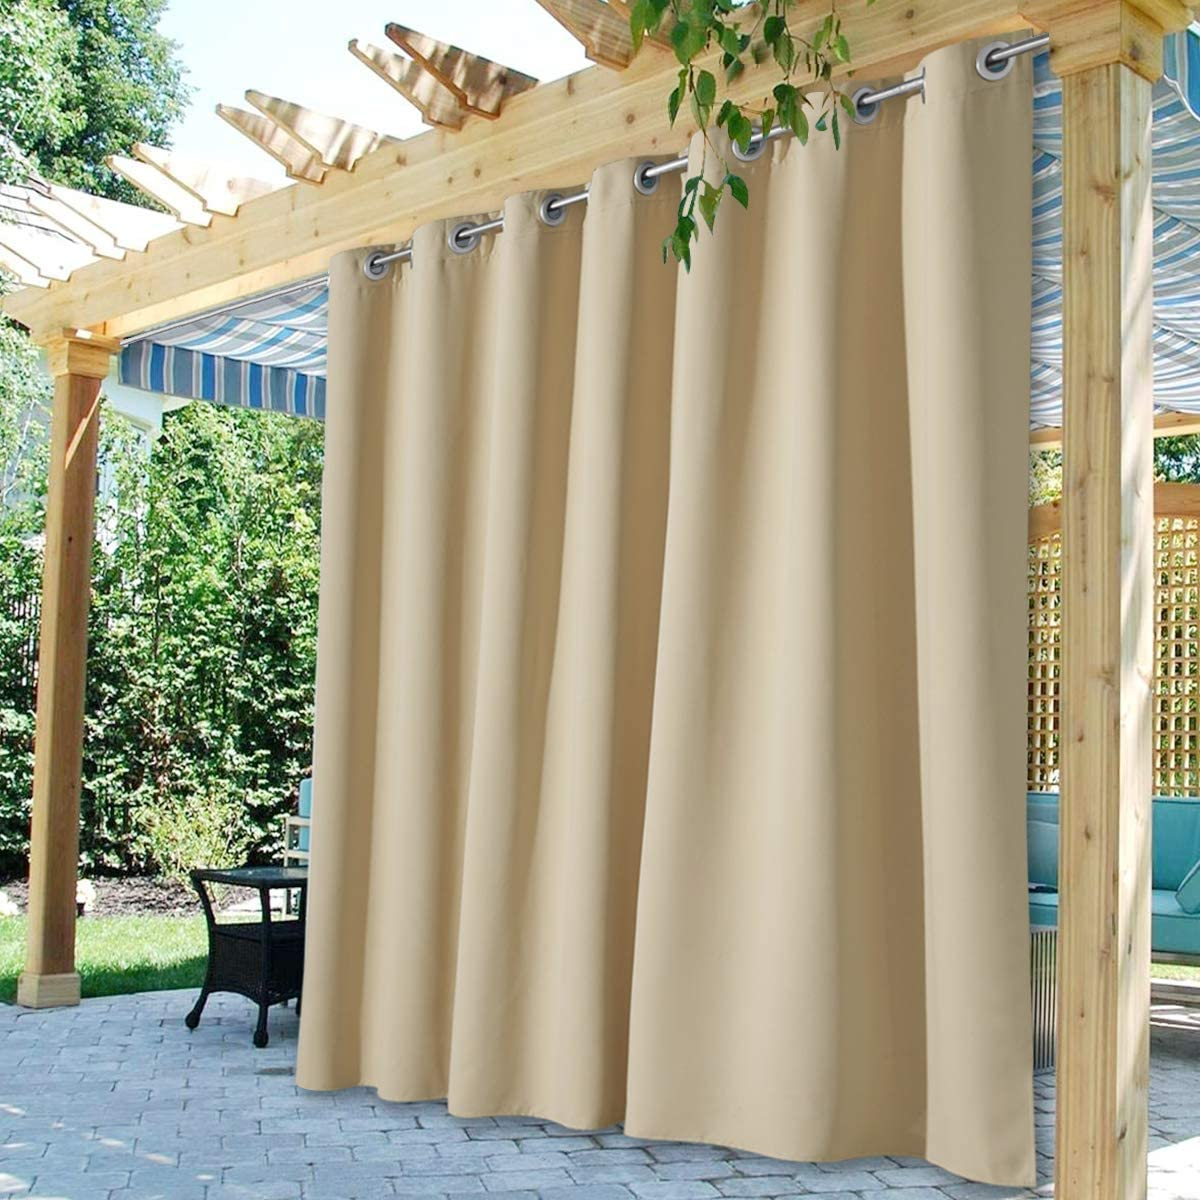 Waterproof Blackout Curtains Thermal-insulated Patio Outdoor Drape Lanai Cabana